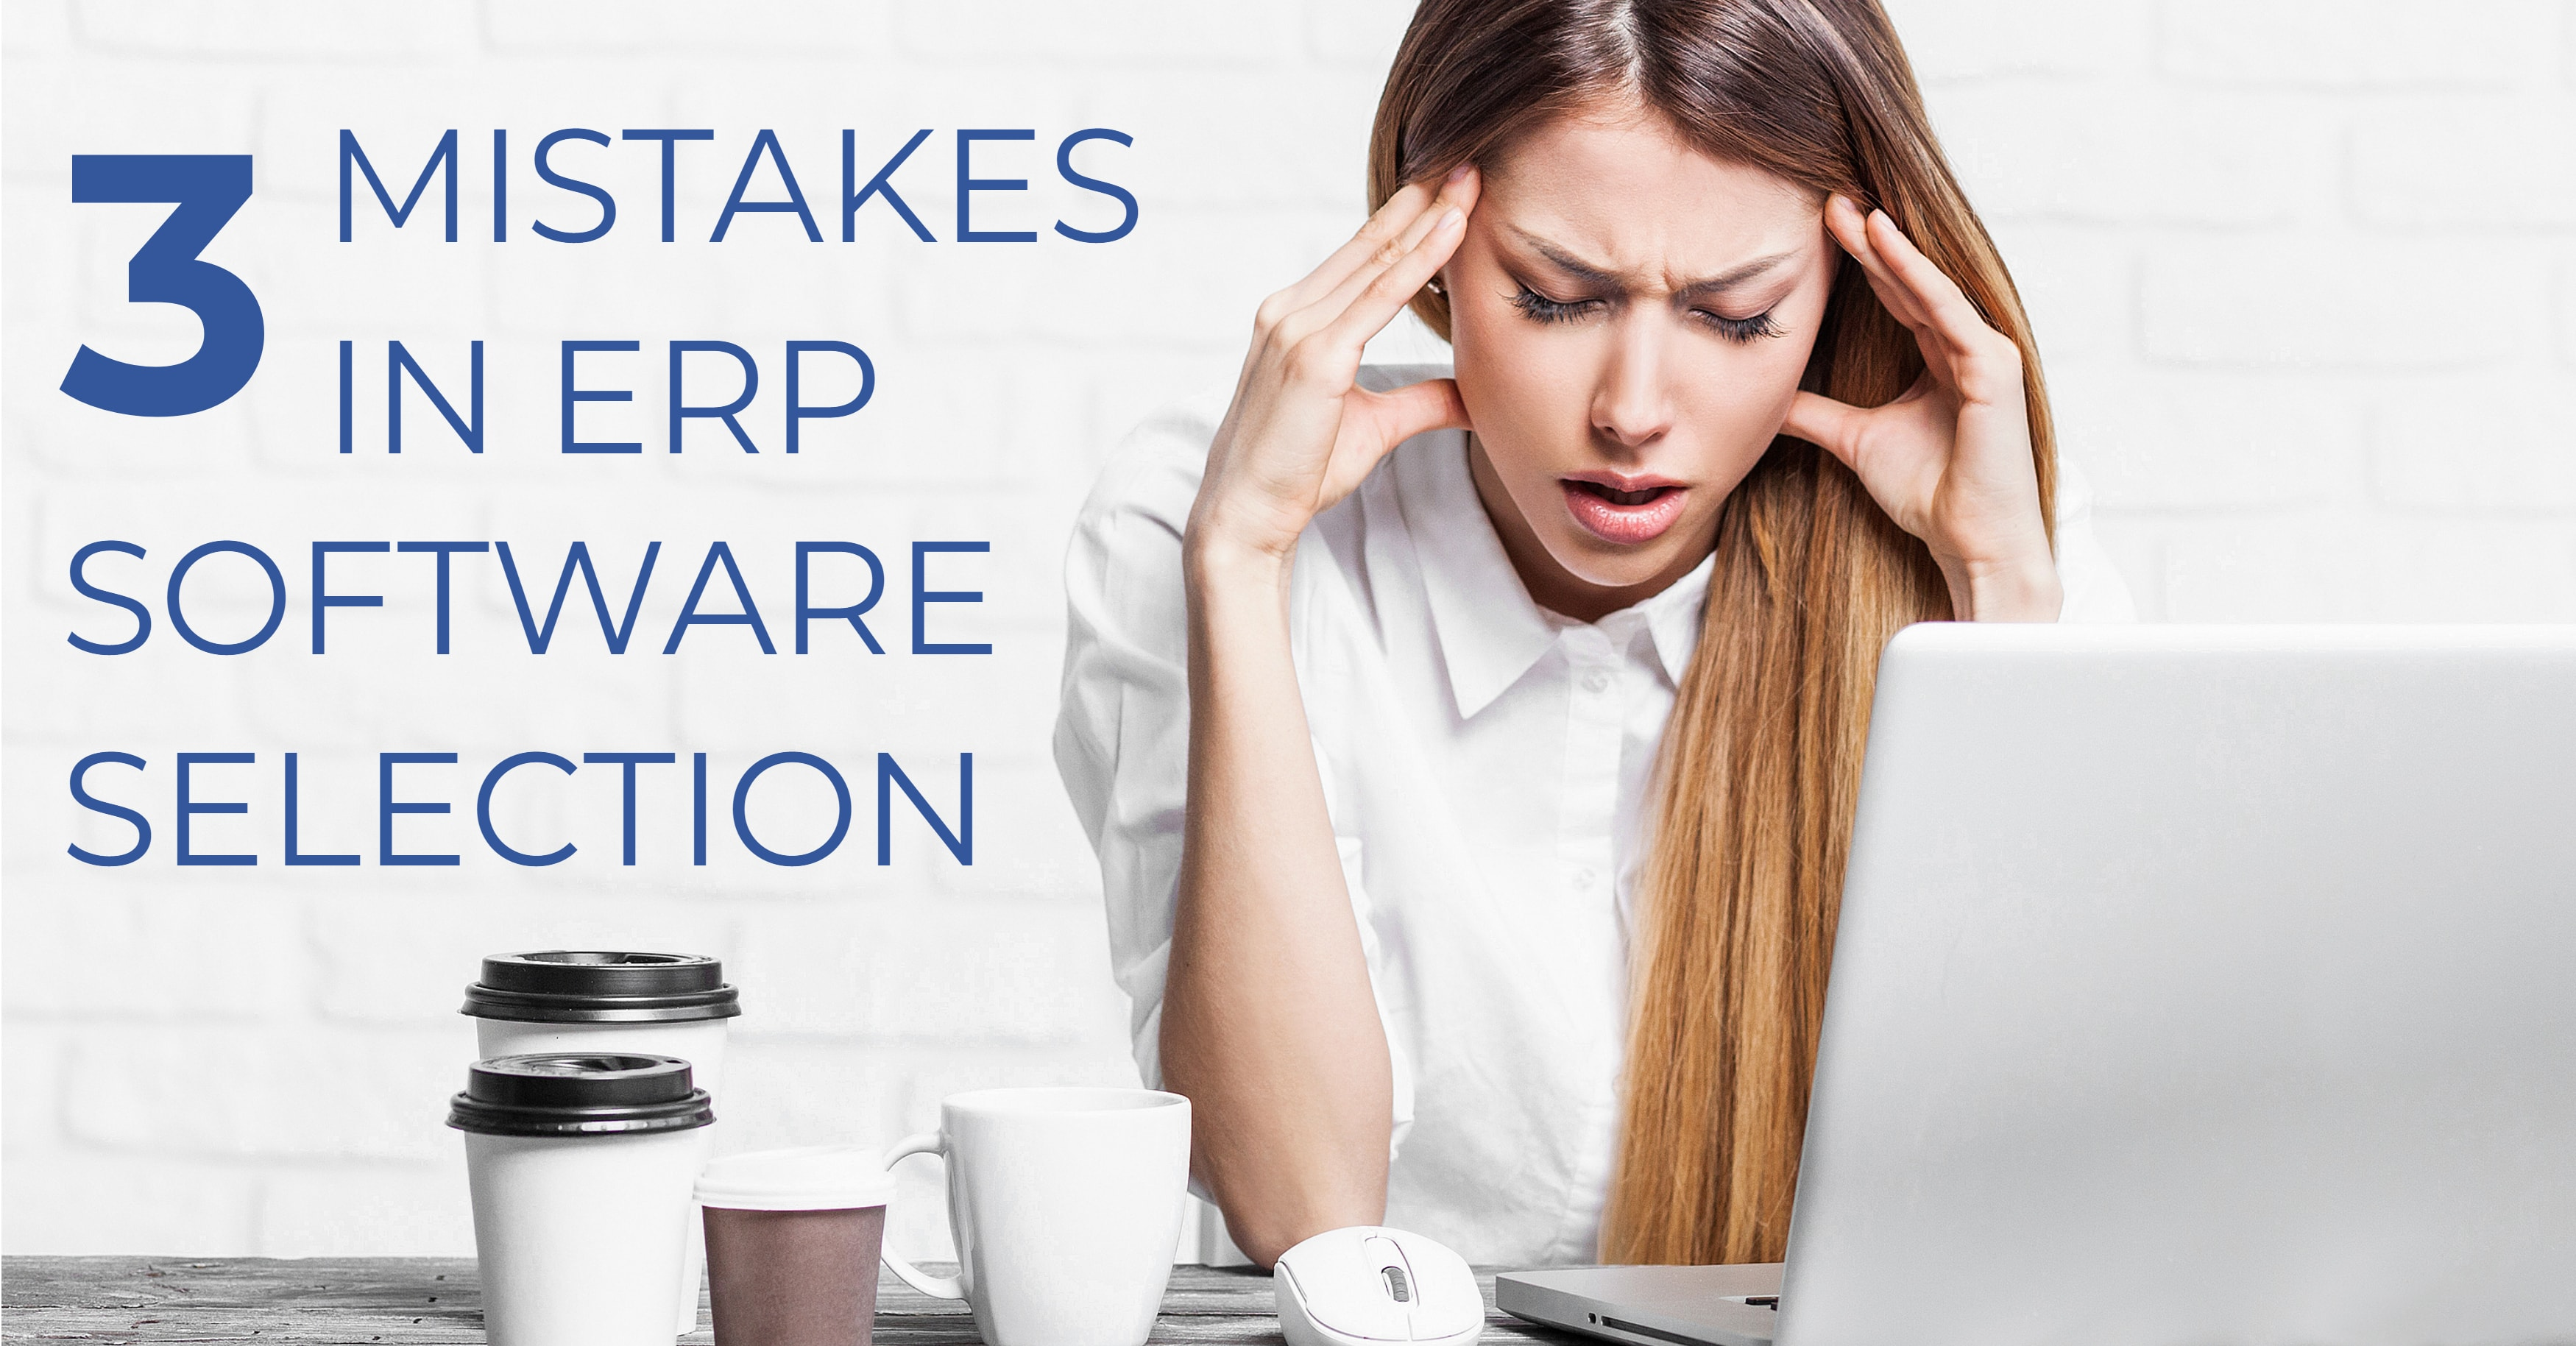 3 Mistakes in ERP Software Selection